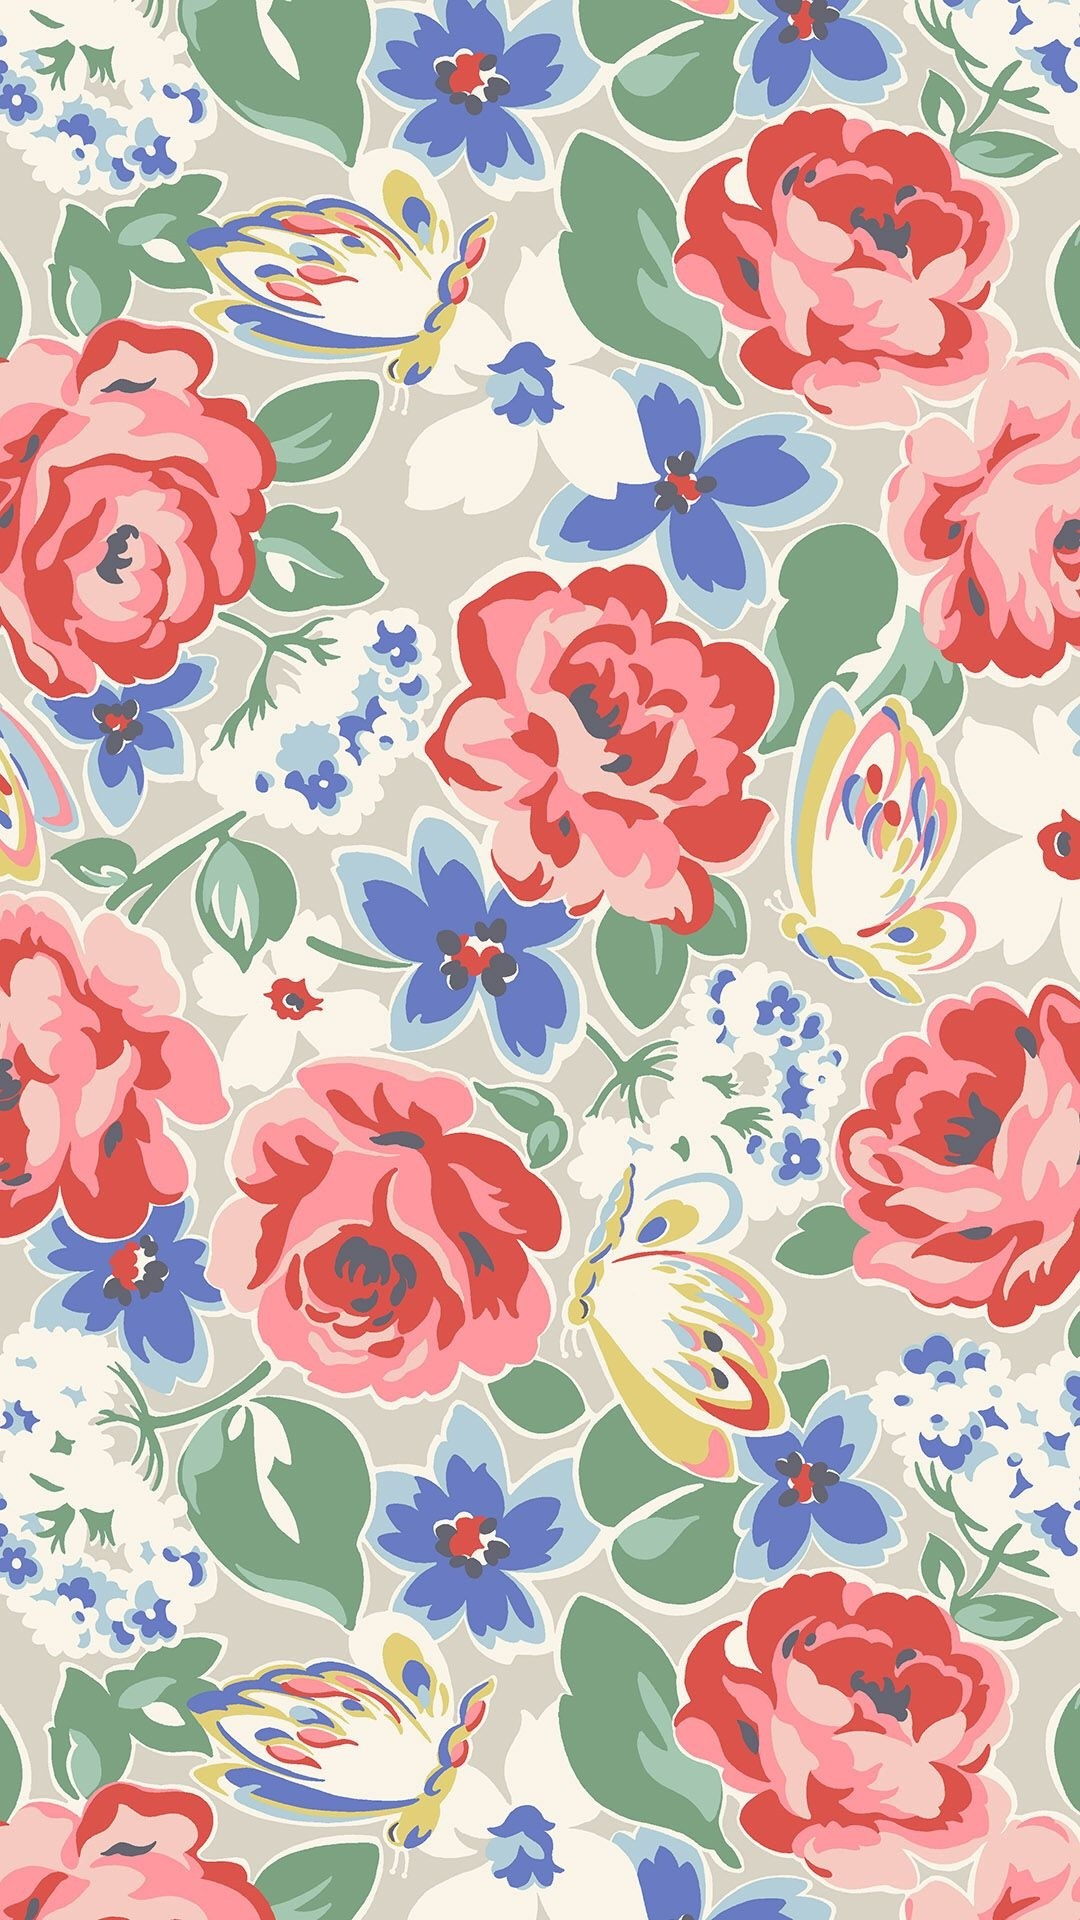 Lilly Pulitzer iPhone hd wallpaper